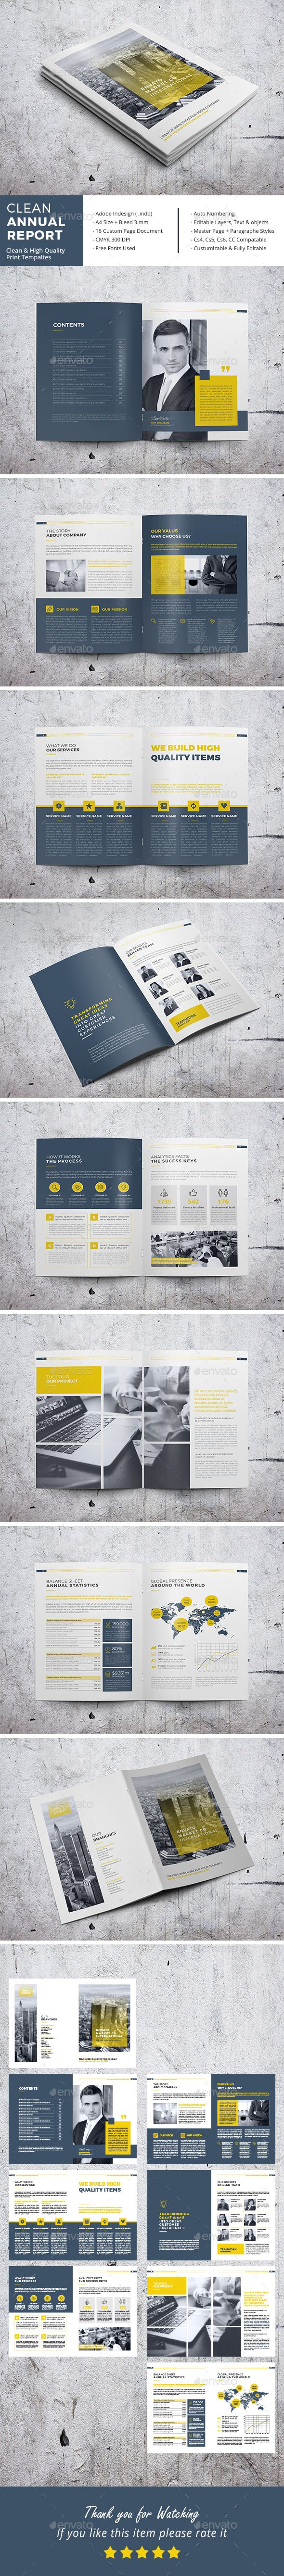 458 best layout and typography images on pinterest posters clean annual report by emydesign fandeluxe Gallery